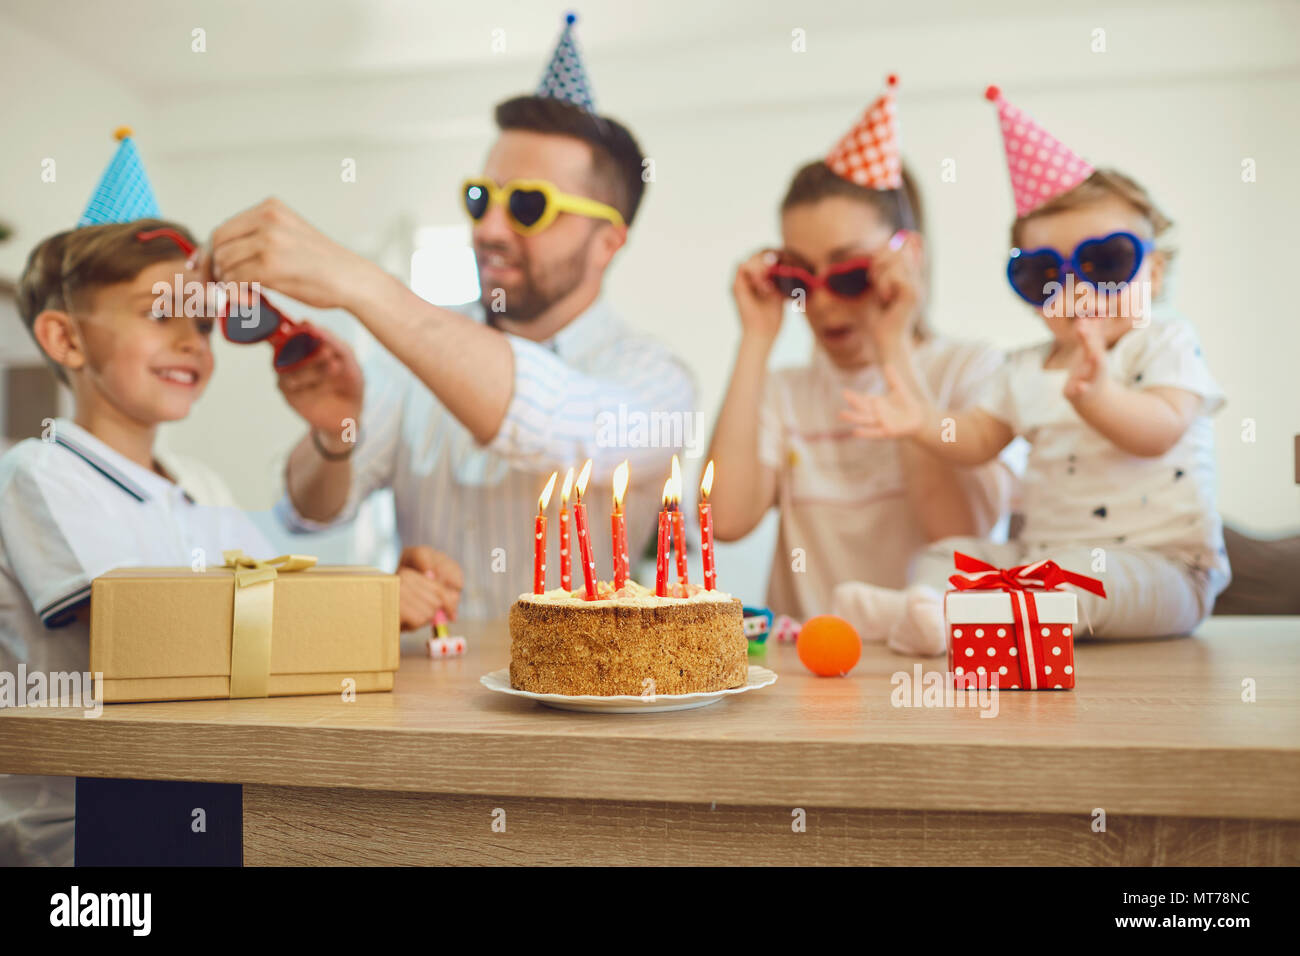 Birthday cake with candles and family out of focus. - Stock Image